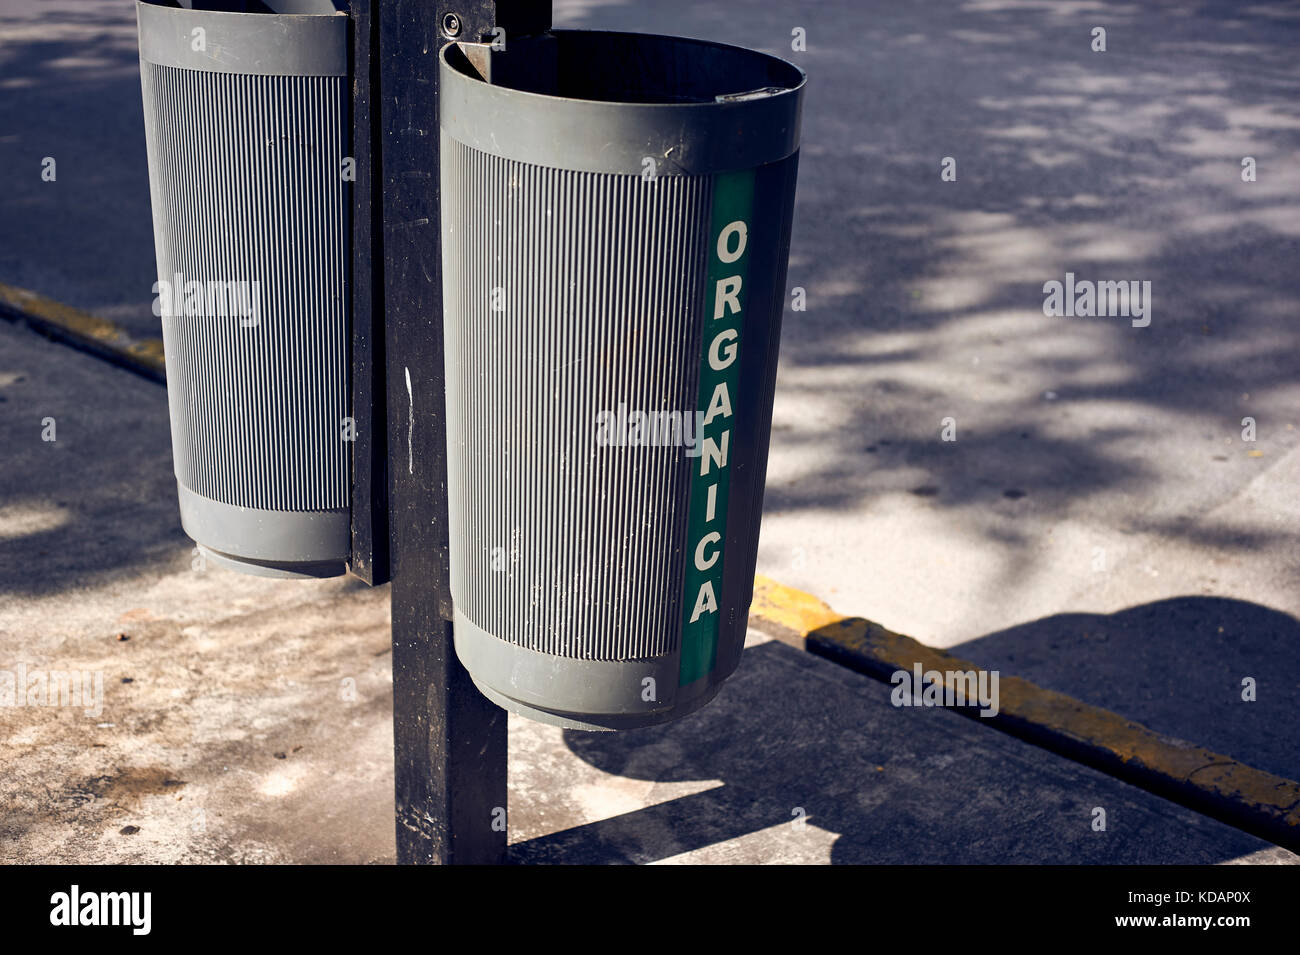 Organic and inorganic waste bins on Paseo de Montejo avenue in Merida, Yucatan, Mexico - Stock Image